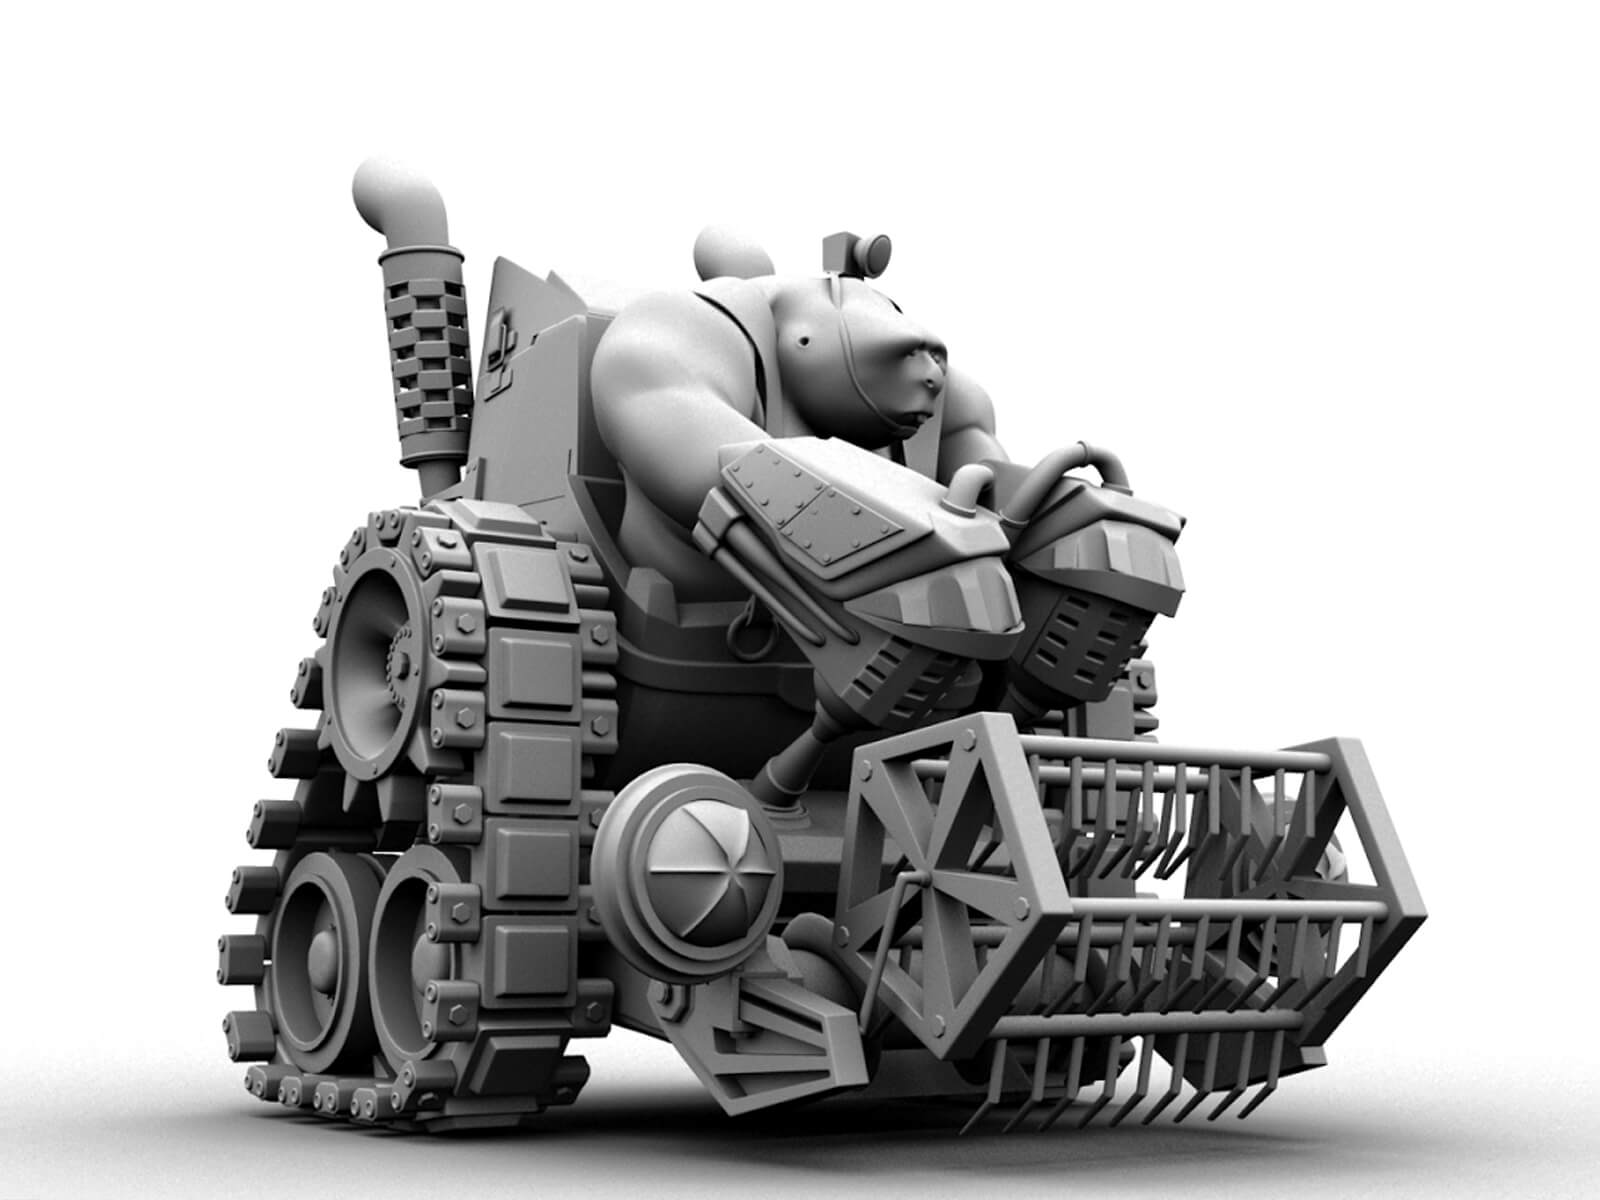 computer-generated 3D model of a muscular male character sitting in a tank-like vehicle